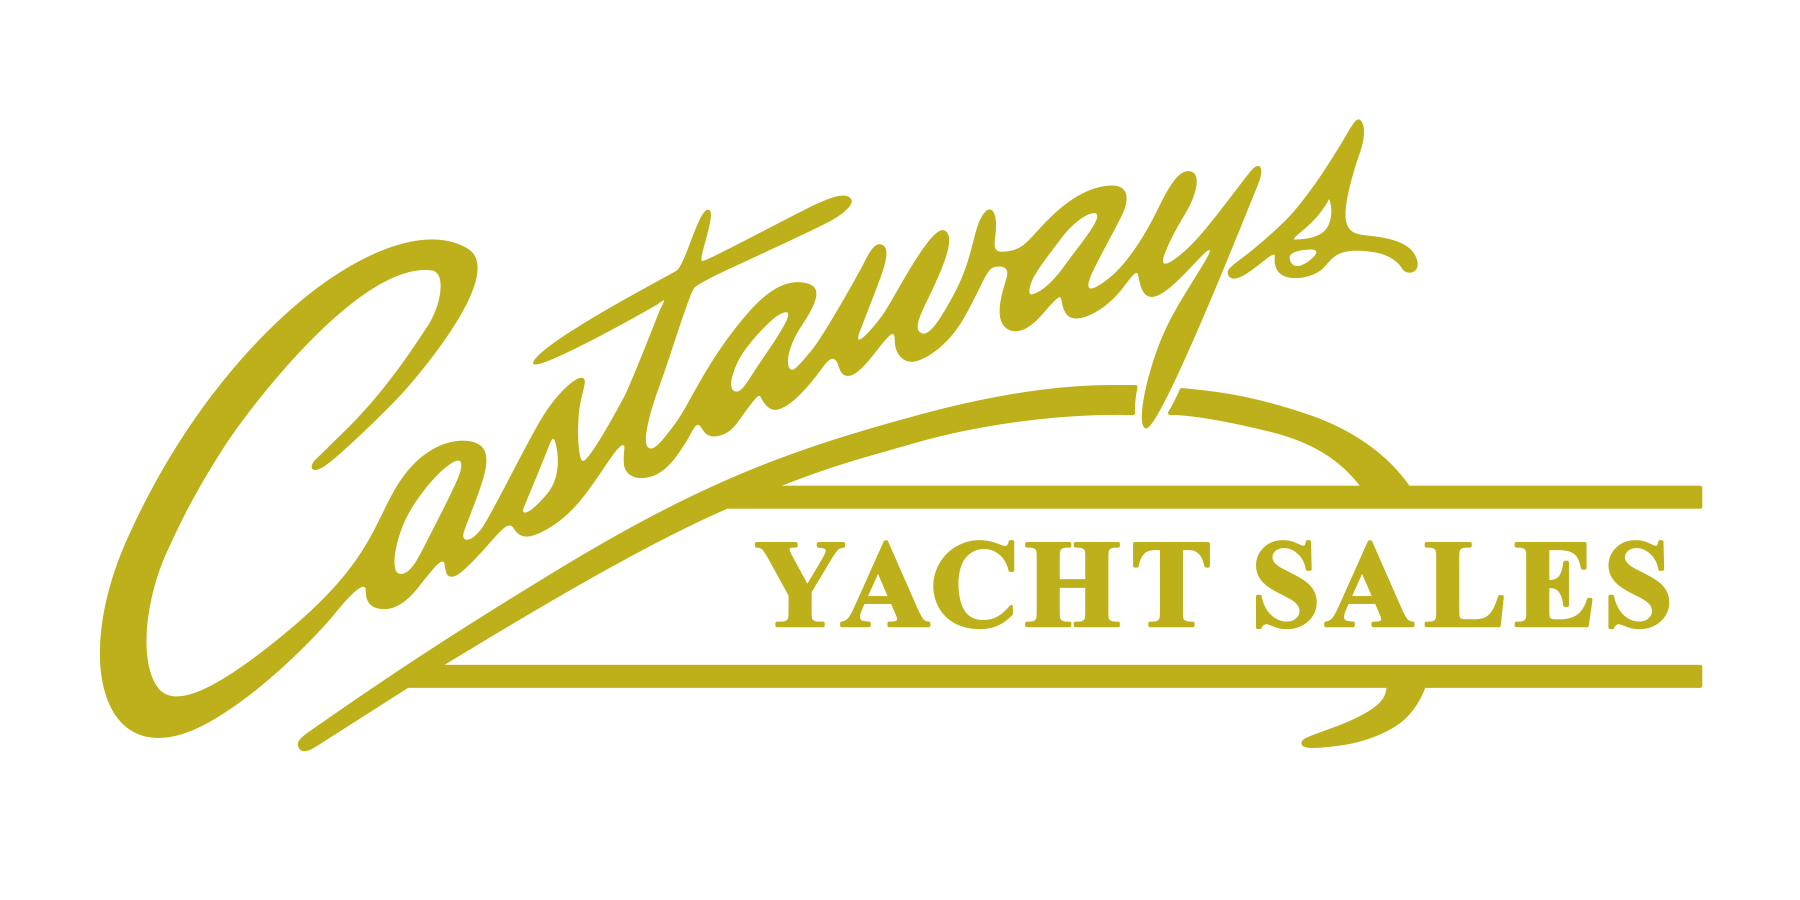 Castaways Yacht Saleslogo